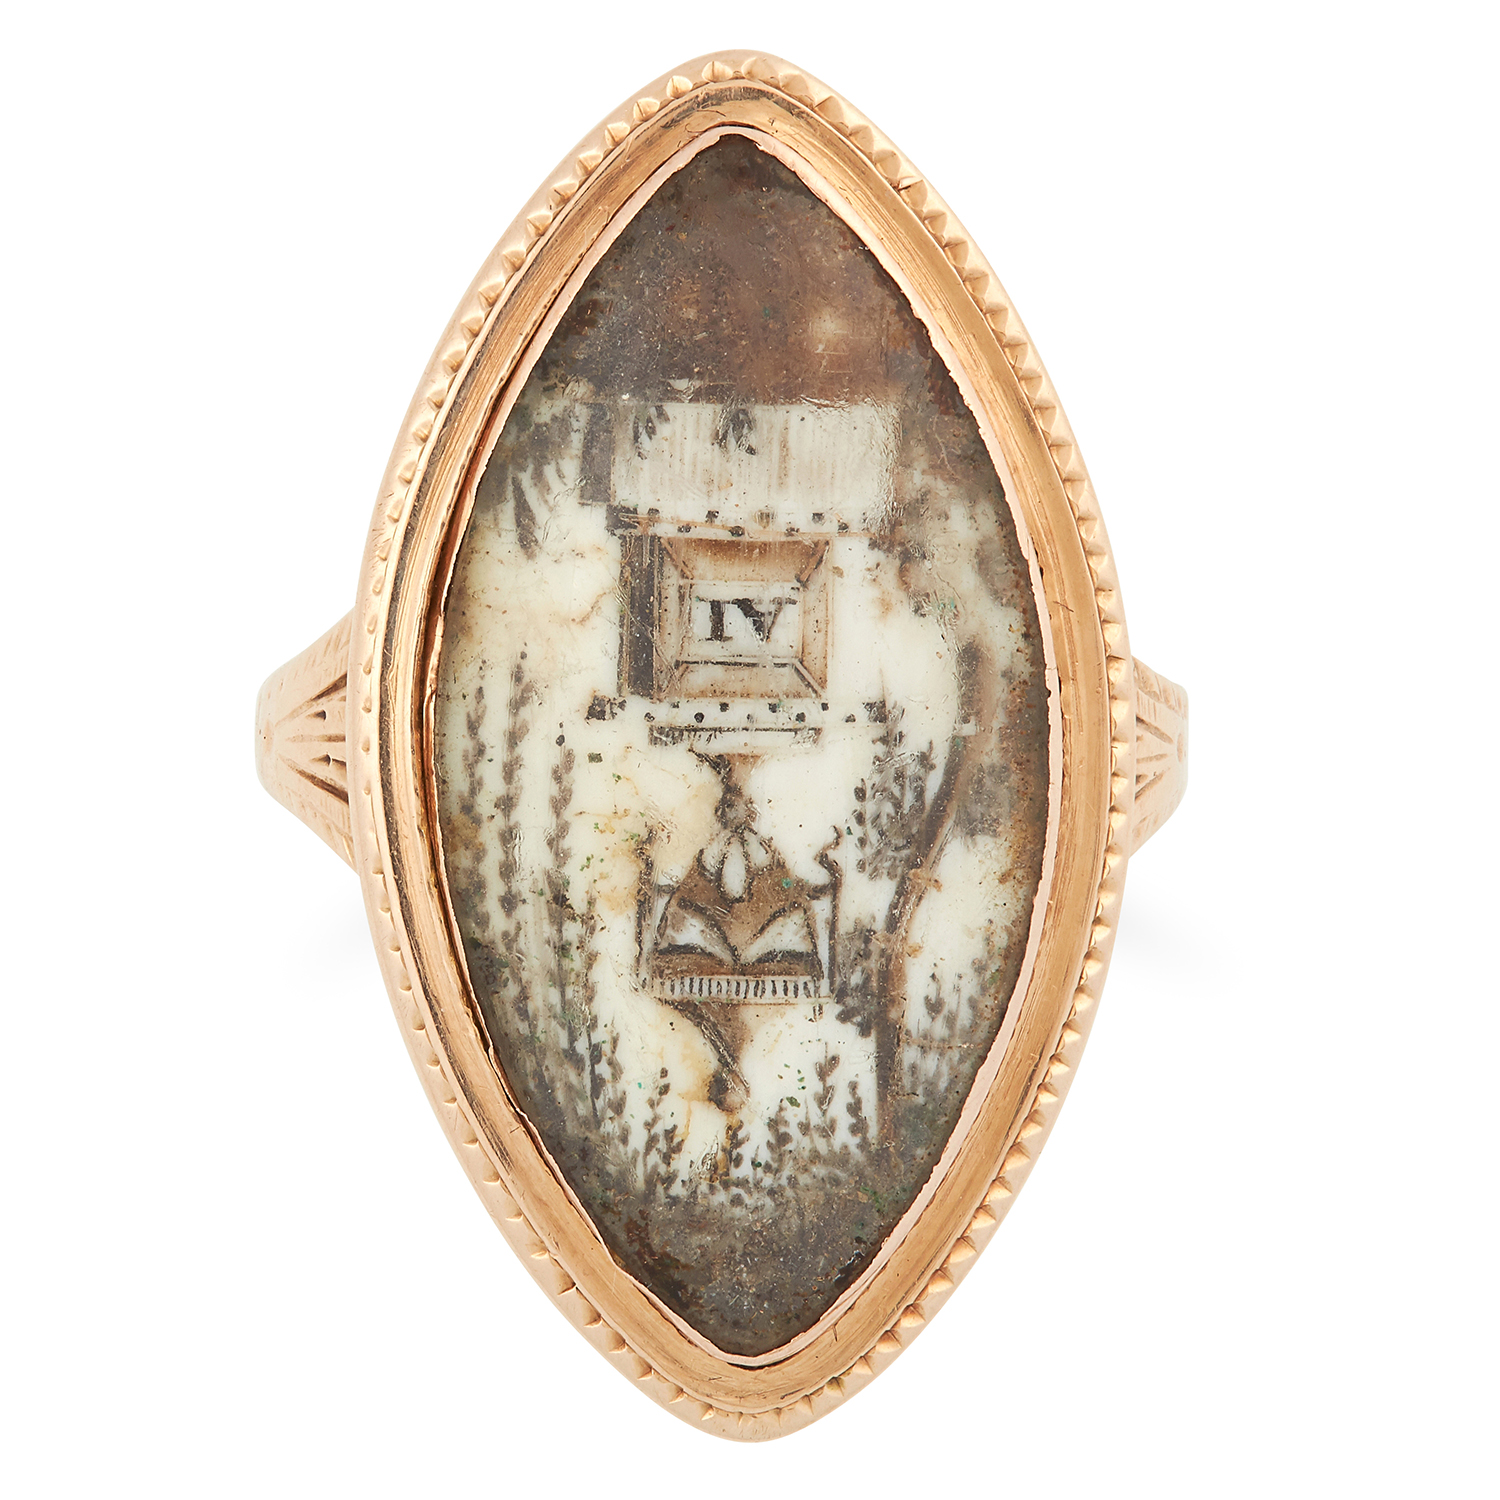 Los 13 - ANTIQUE MINIATURE MOURNING RING, CIRCA 1785 set with a painted scene depicting an urn, initialled